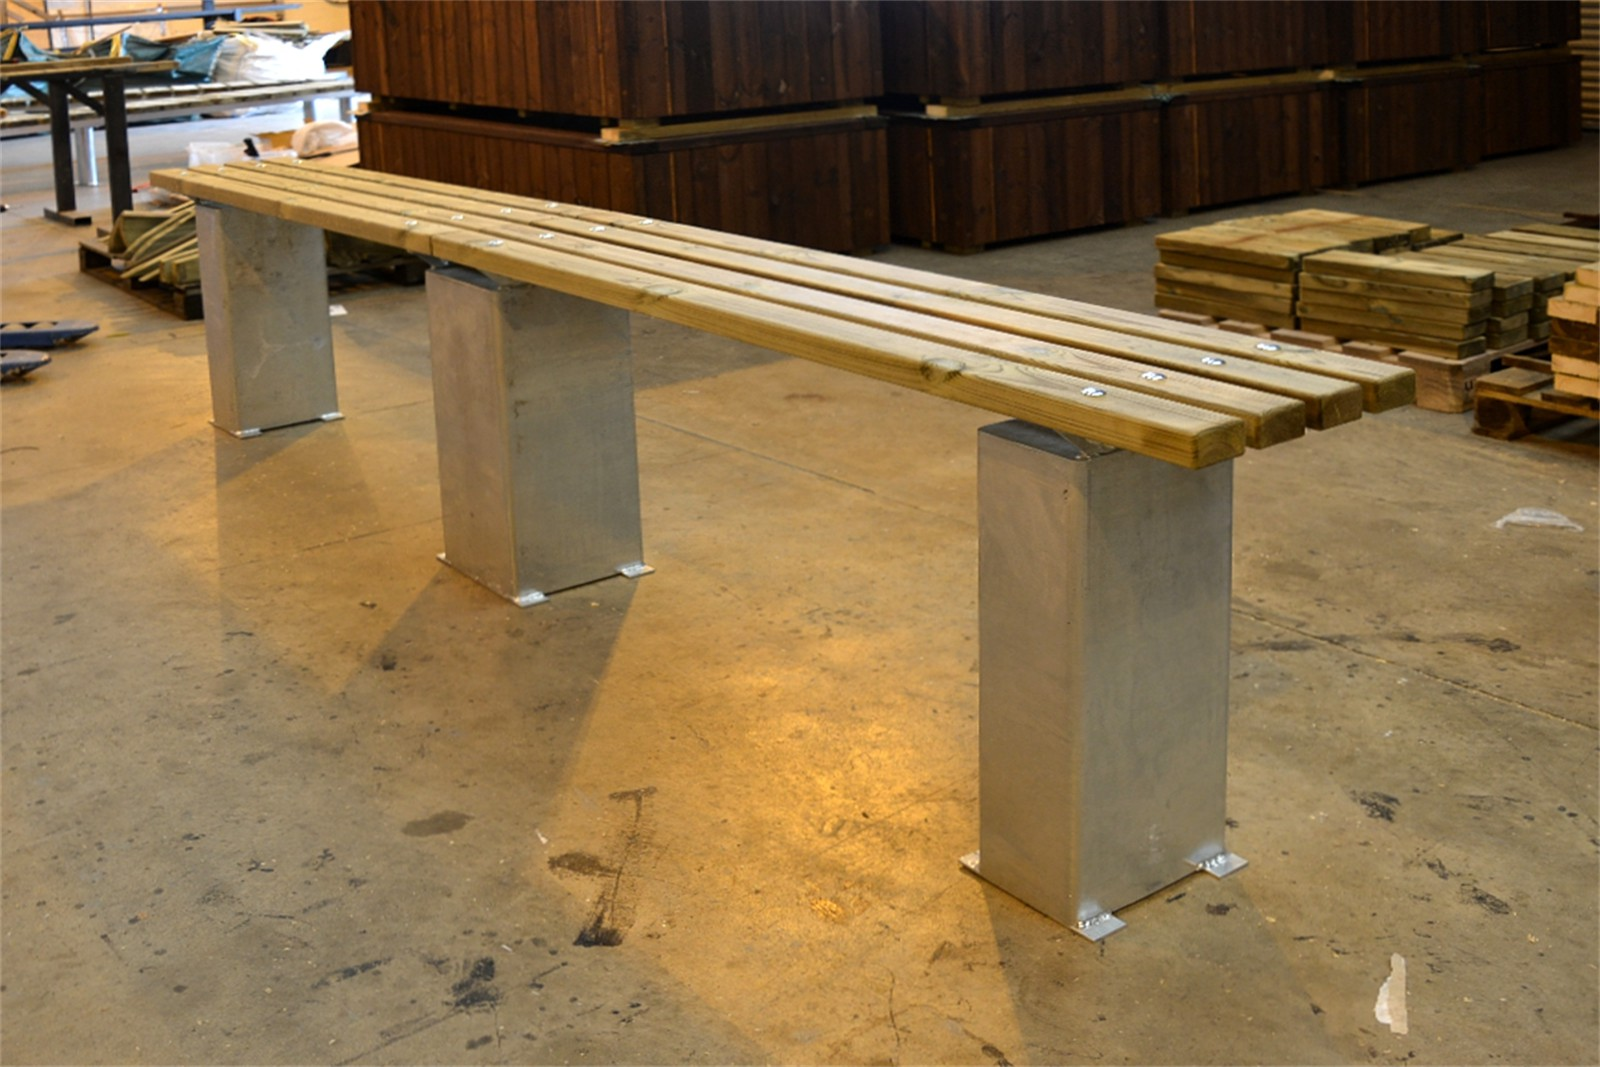 60sbe14 - Bexley timber and galvanised steel bench in manufacture